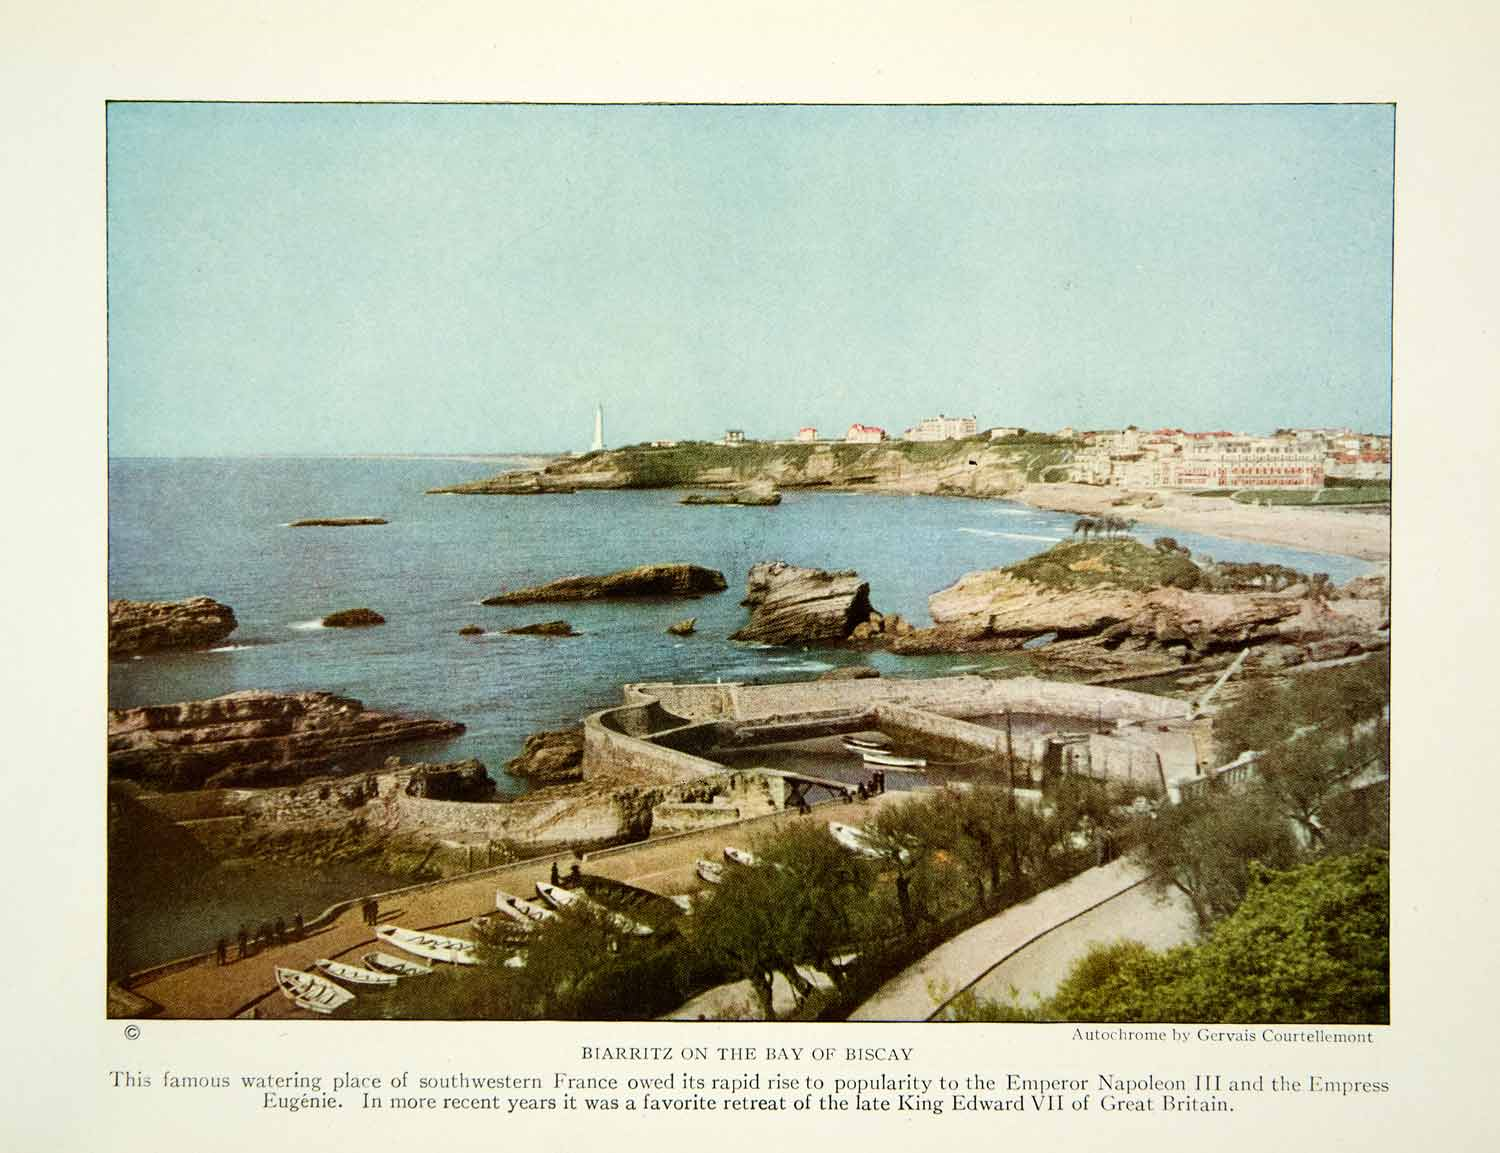 1924 Color Print Bay Biscay Biarritz Town France Landscape Historical Image NGM9